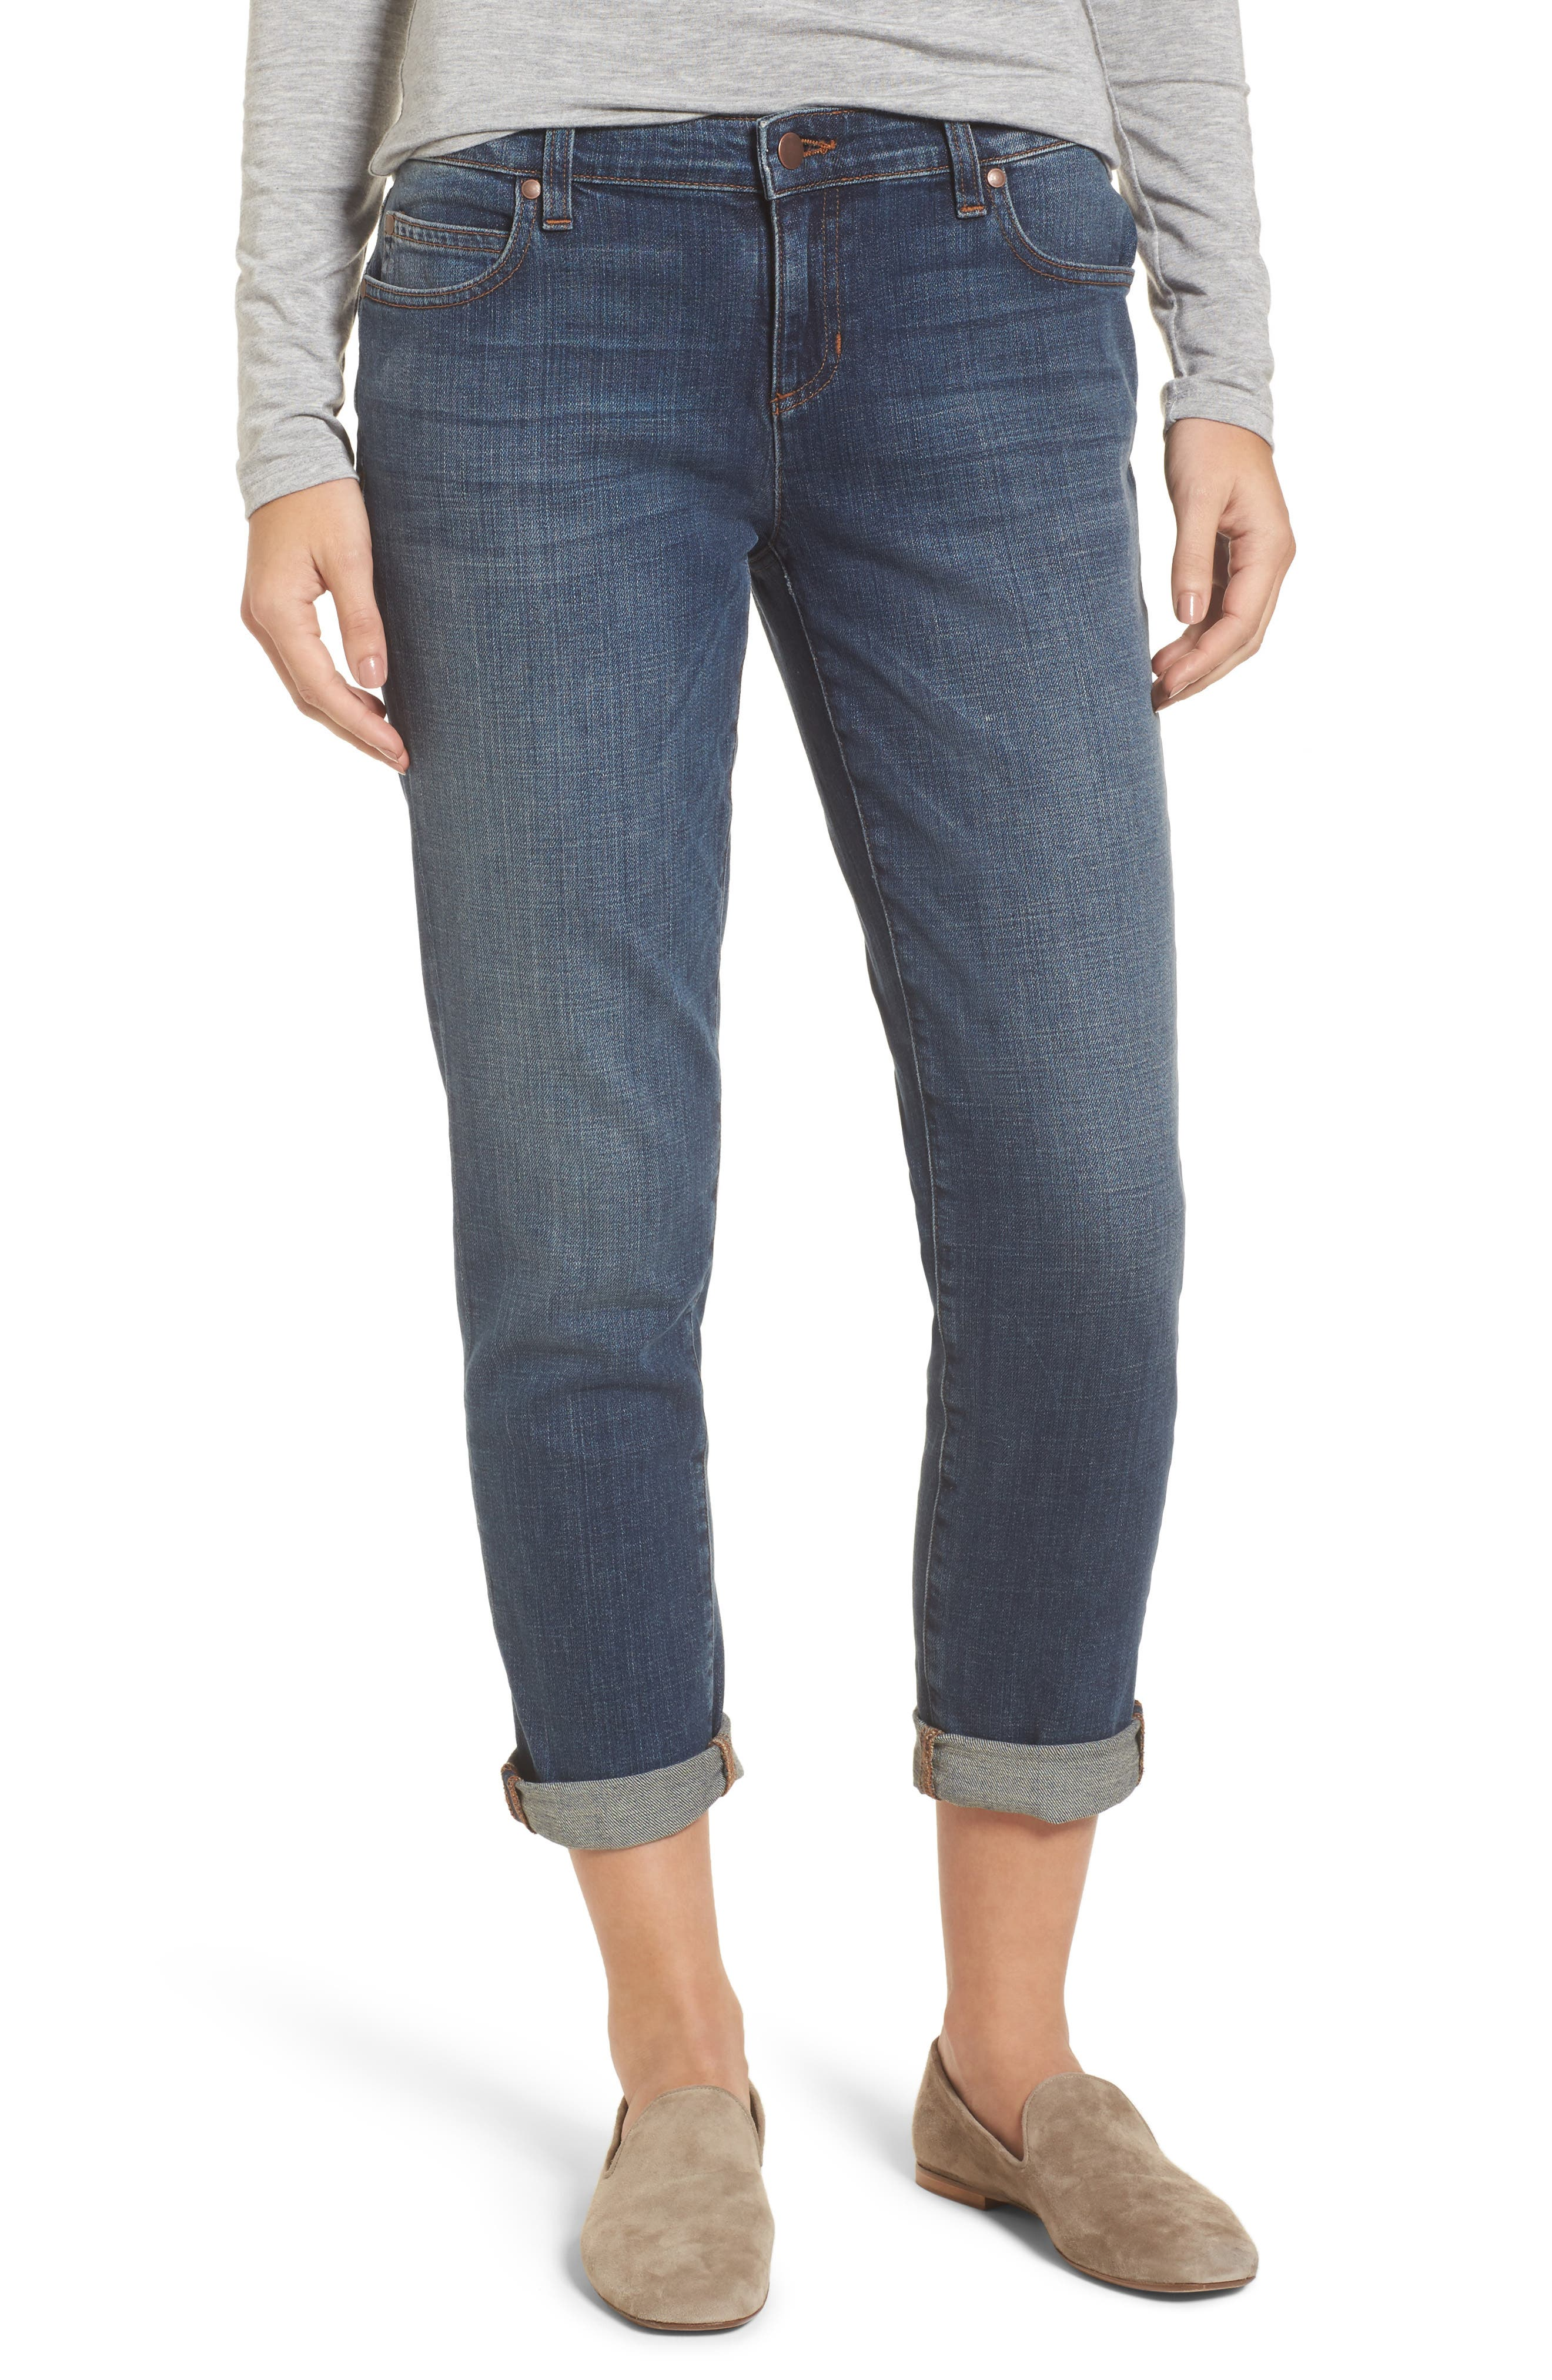 Main Image - Eileen Fisher Organic Cotton Boyfriend Jeans (Online Only) (Regular & Petite)